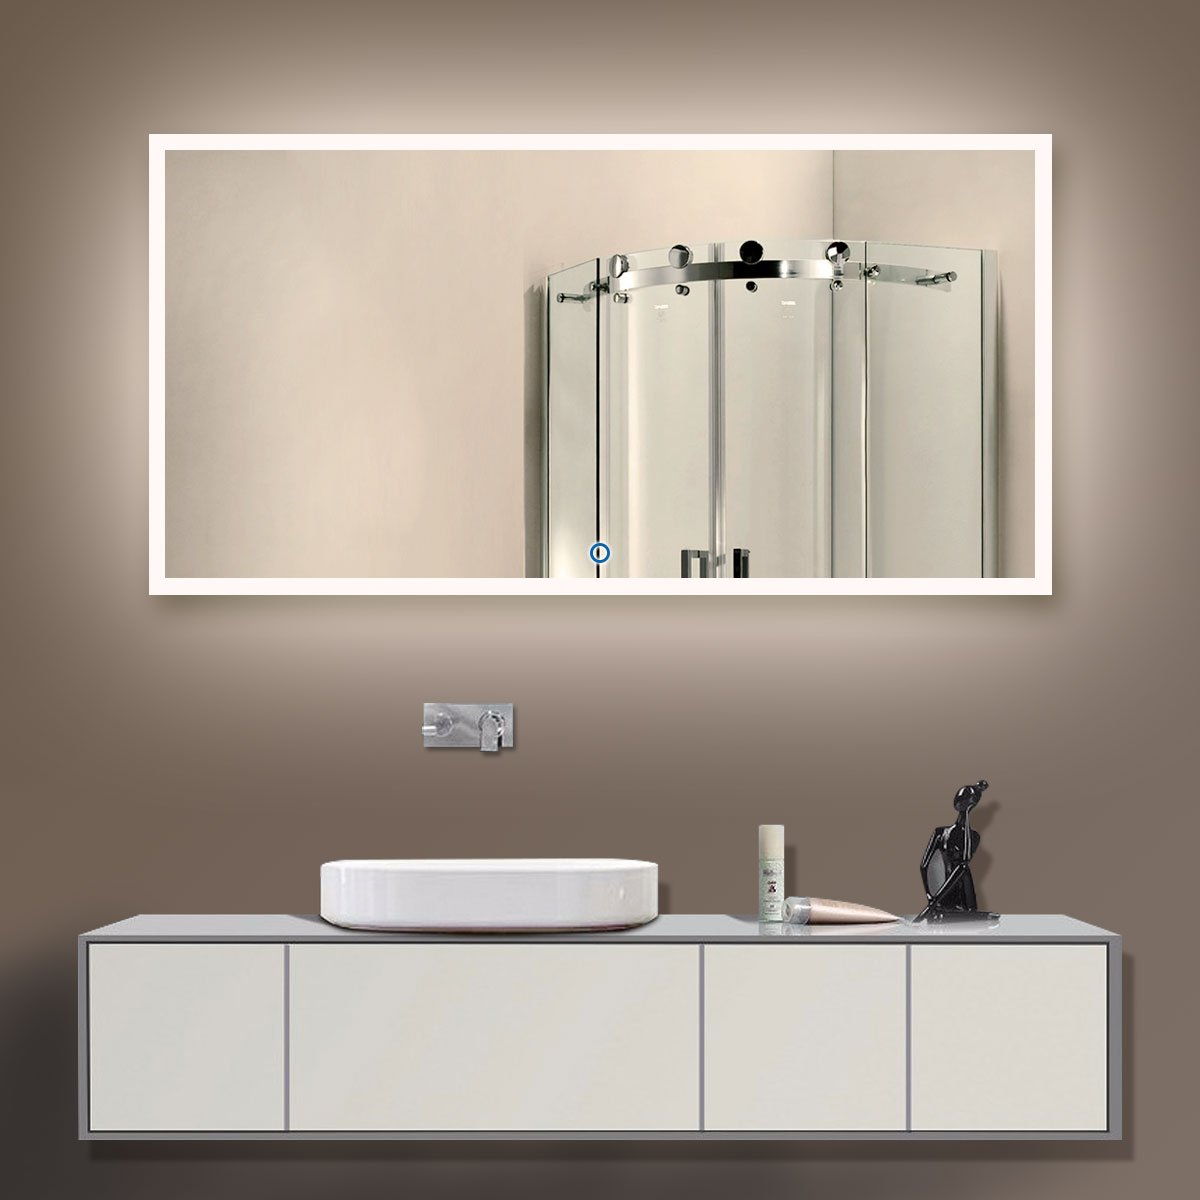 Elegant Light Over Wall Mounted Medicine Cabinet